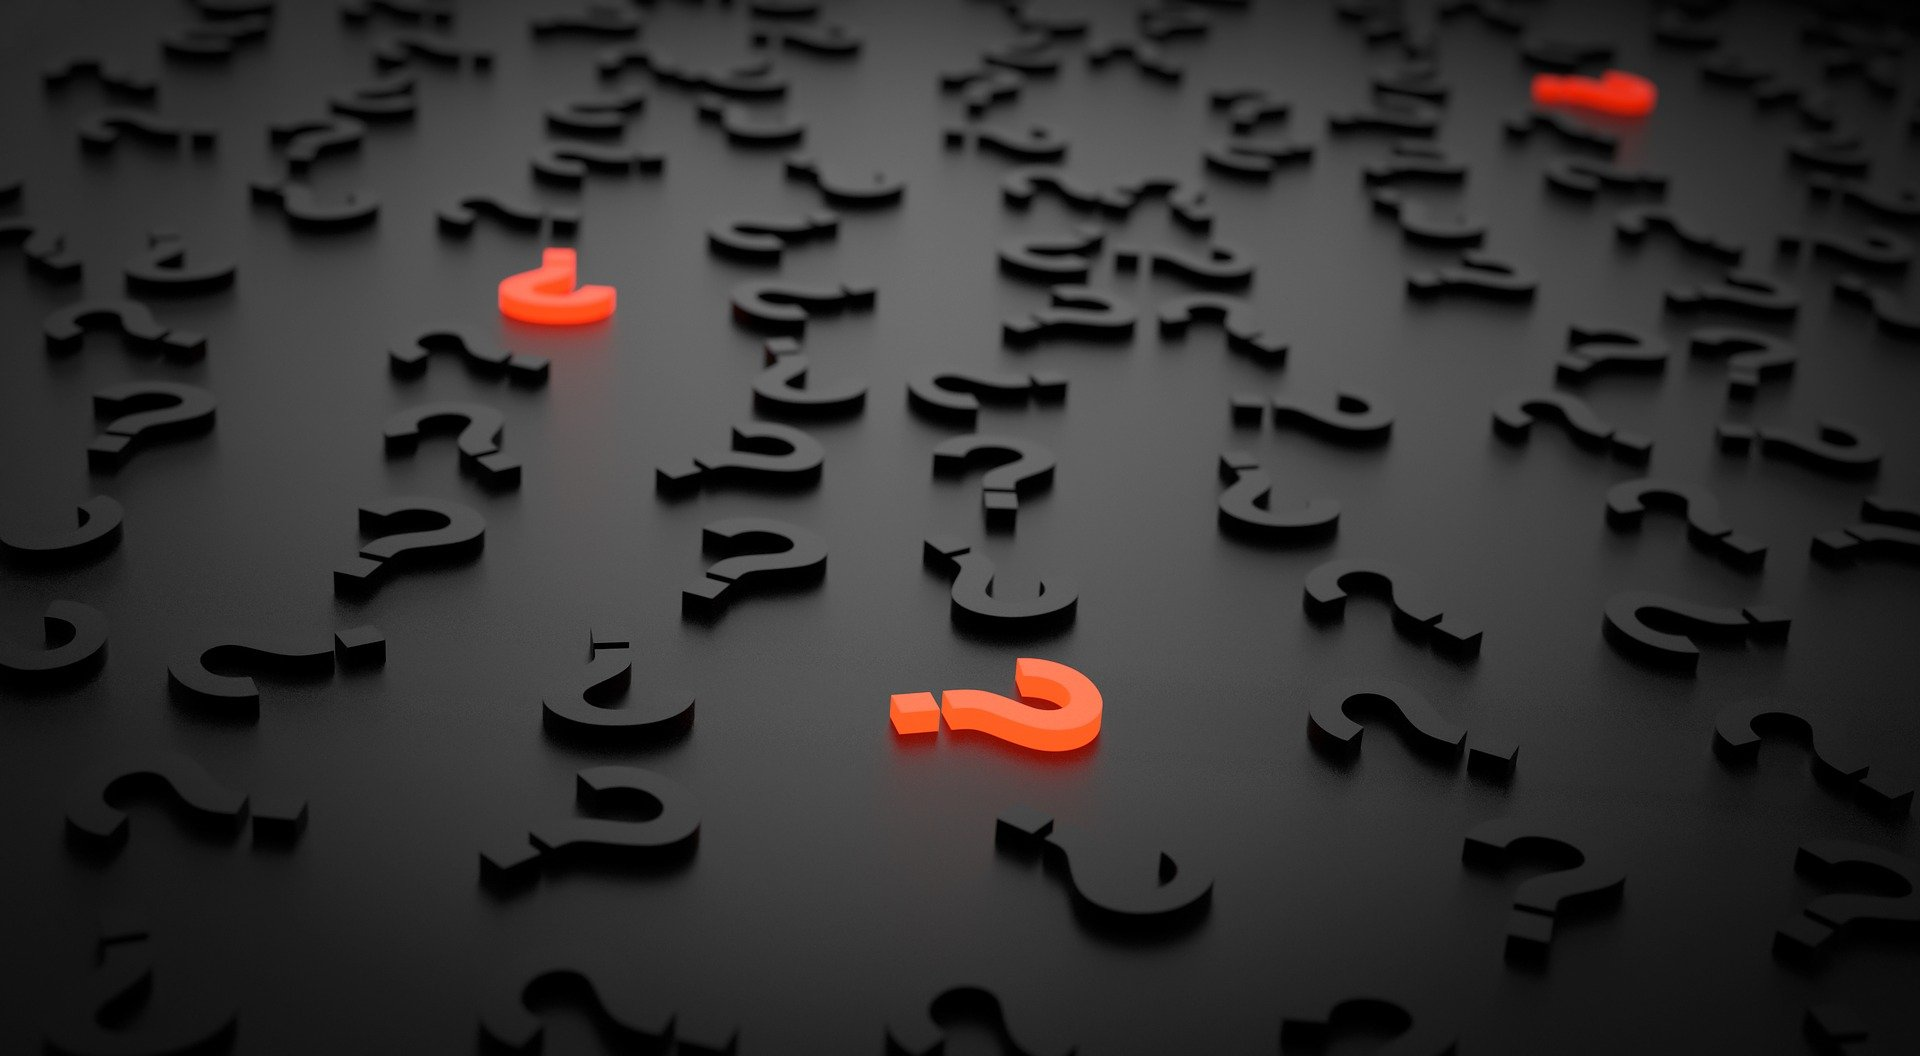 Black question marks are scattered with a few red questions in between. | Photo: Pixabay.com/Arek Socha